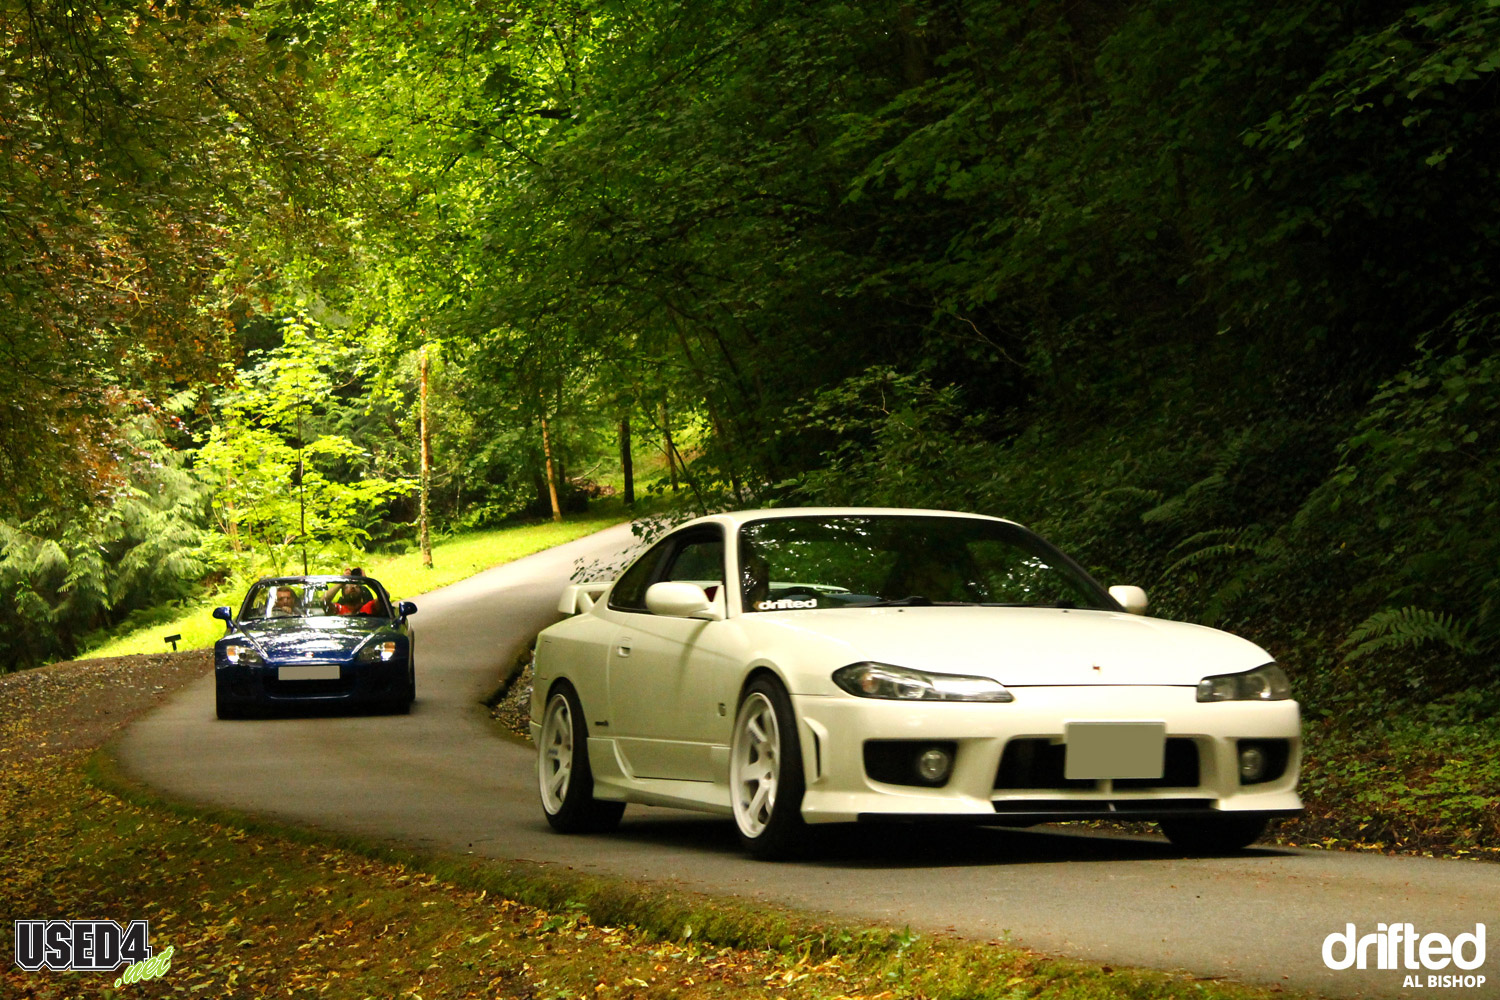 s15-chased-by-s2000